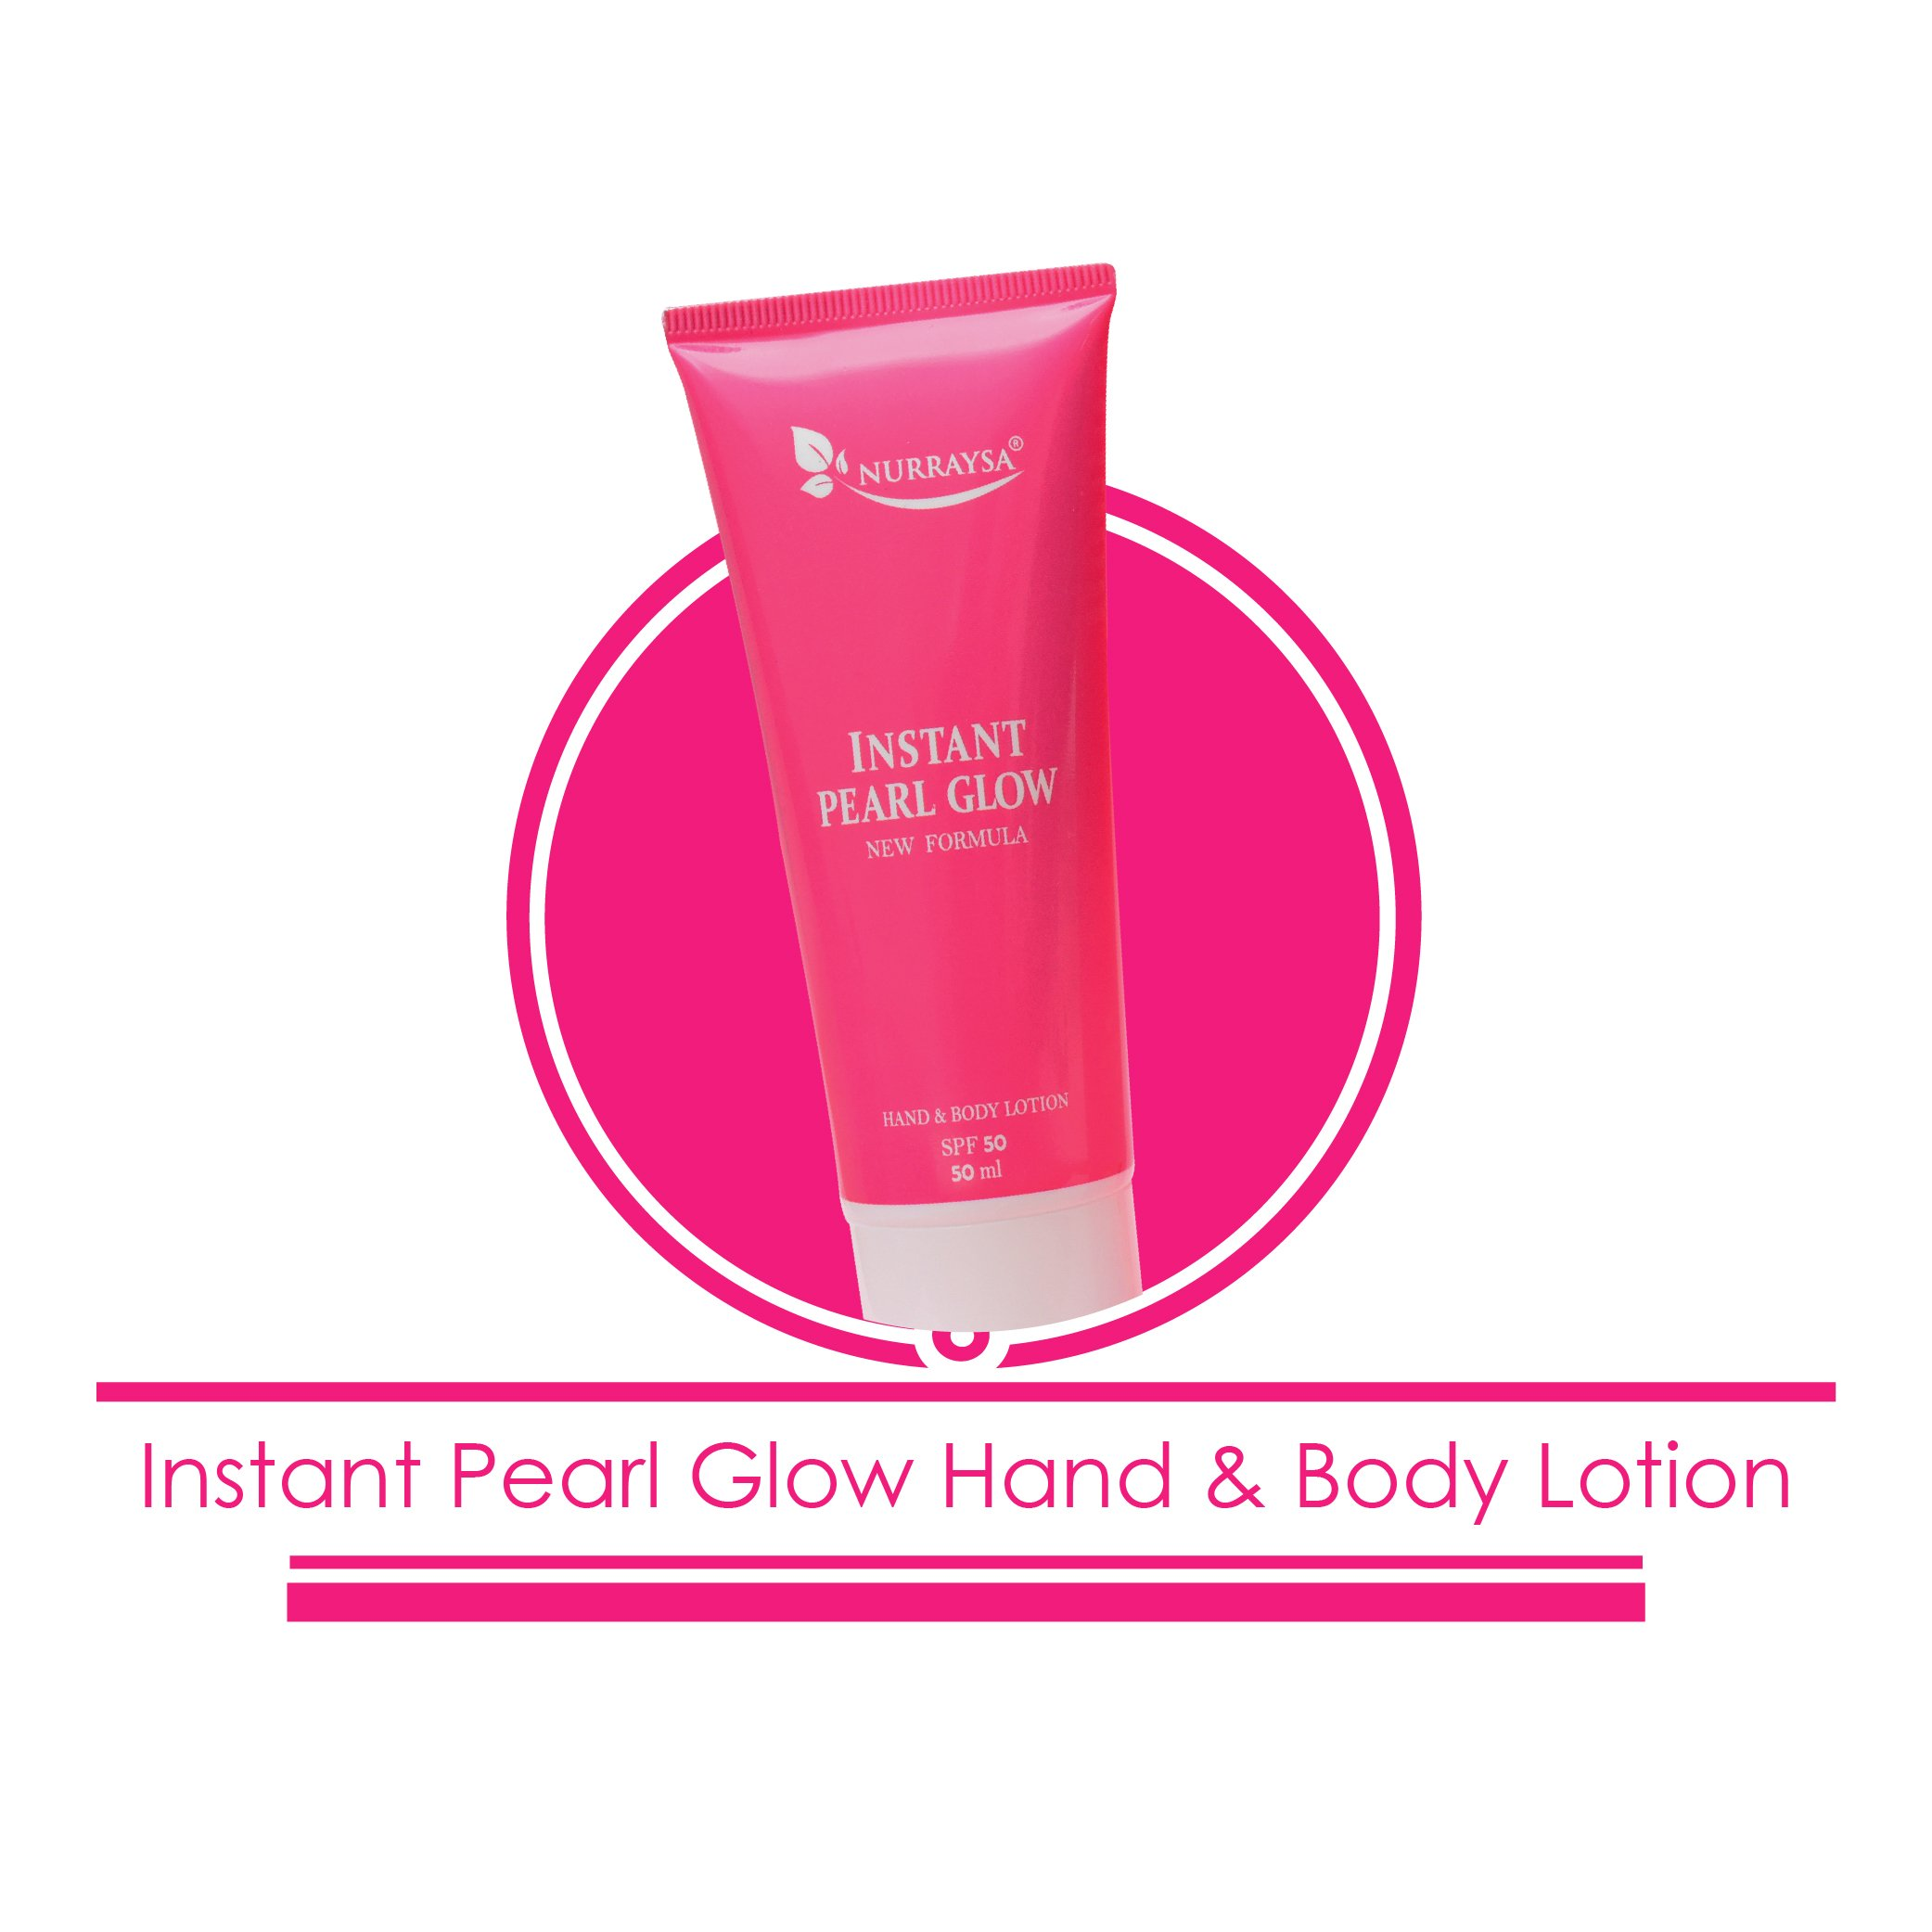 Instant Pearl Glow Hand & Body Lotion